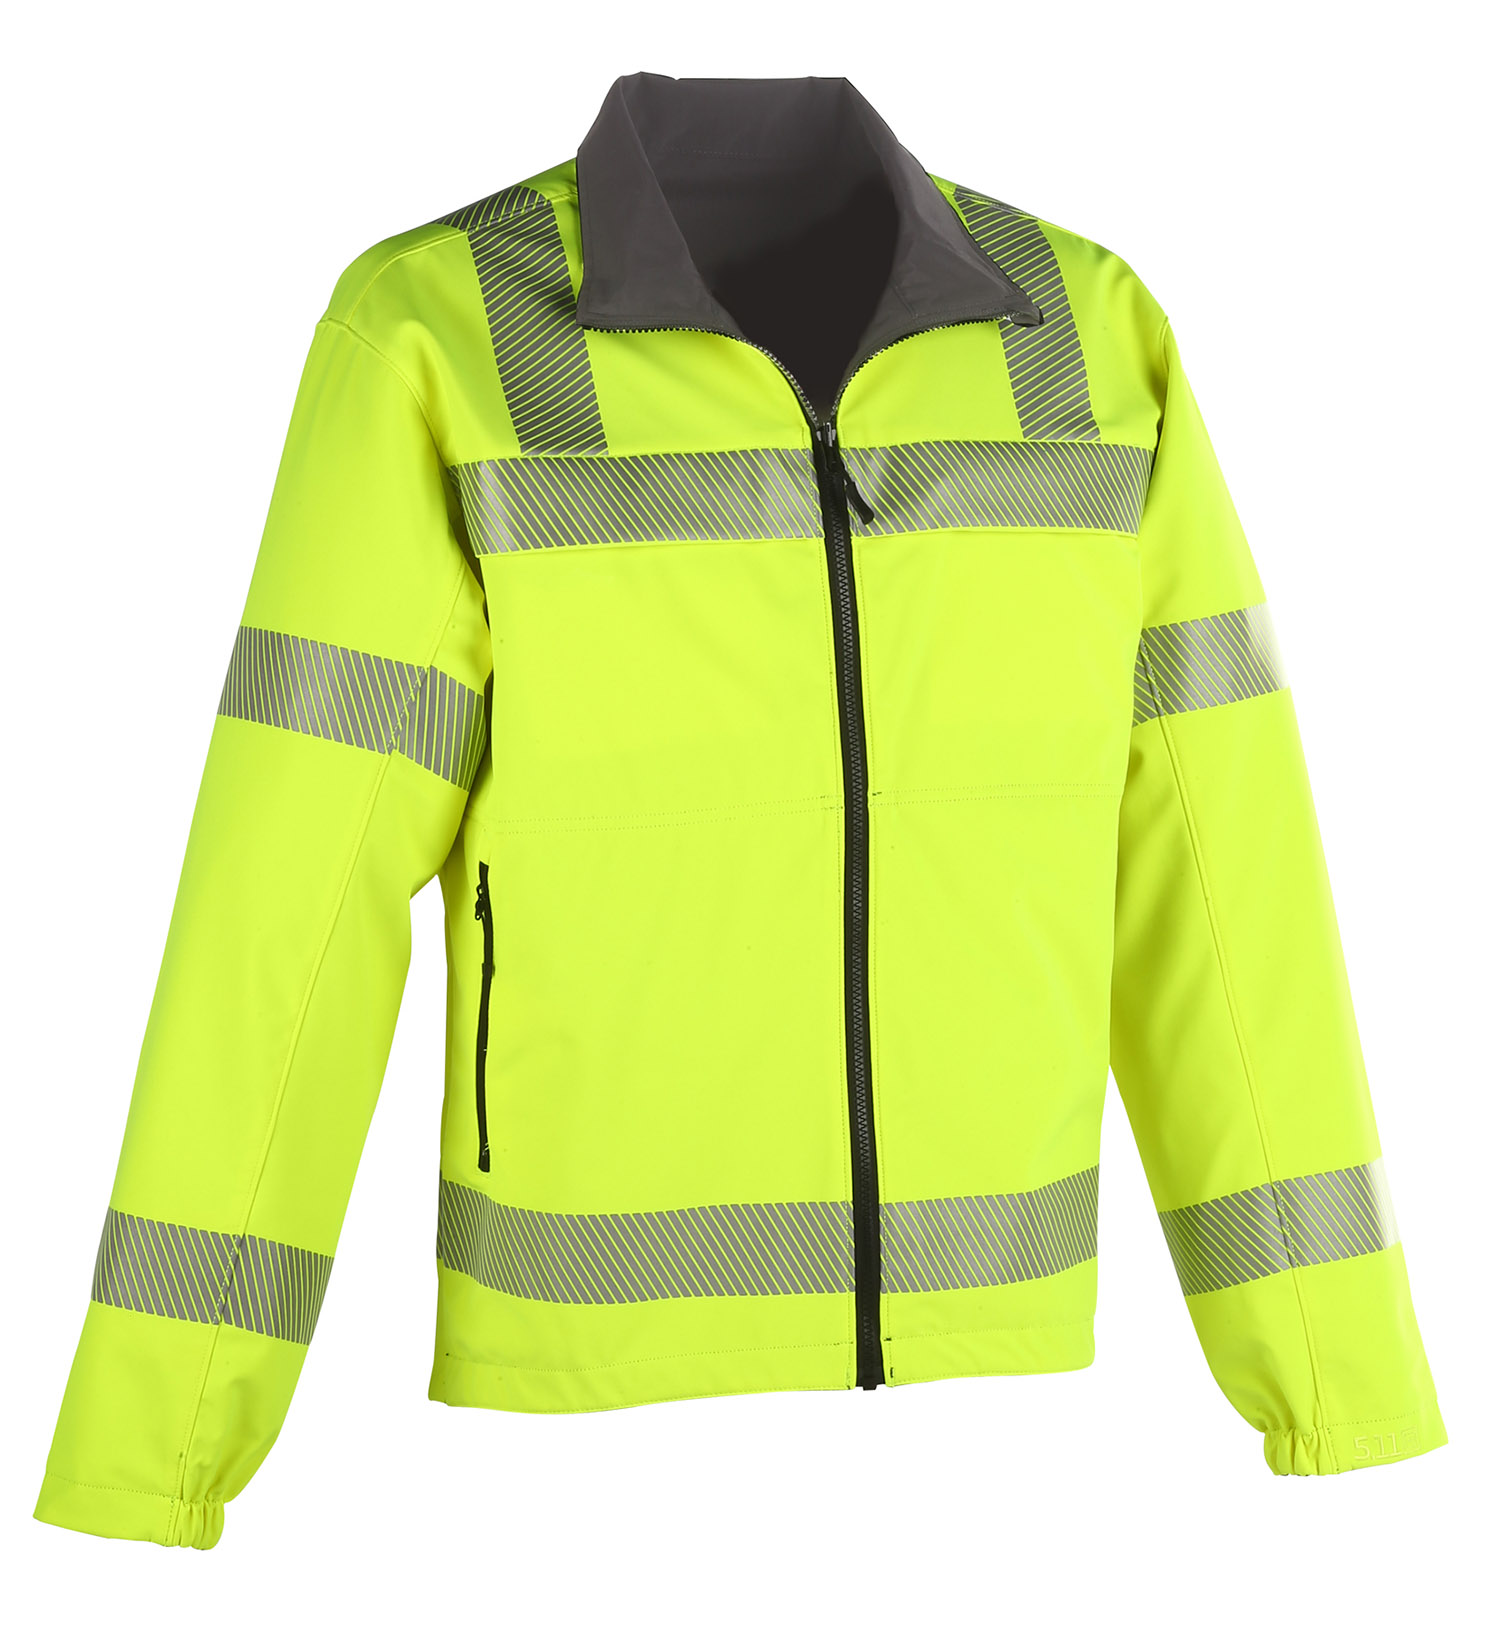 5.11 Tactical Men's Reversible Hi-Vis Softshell